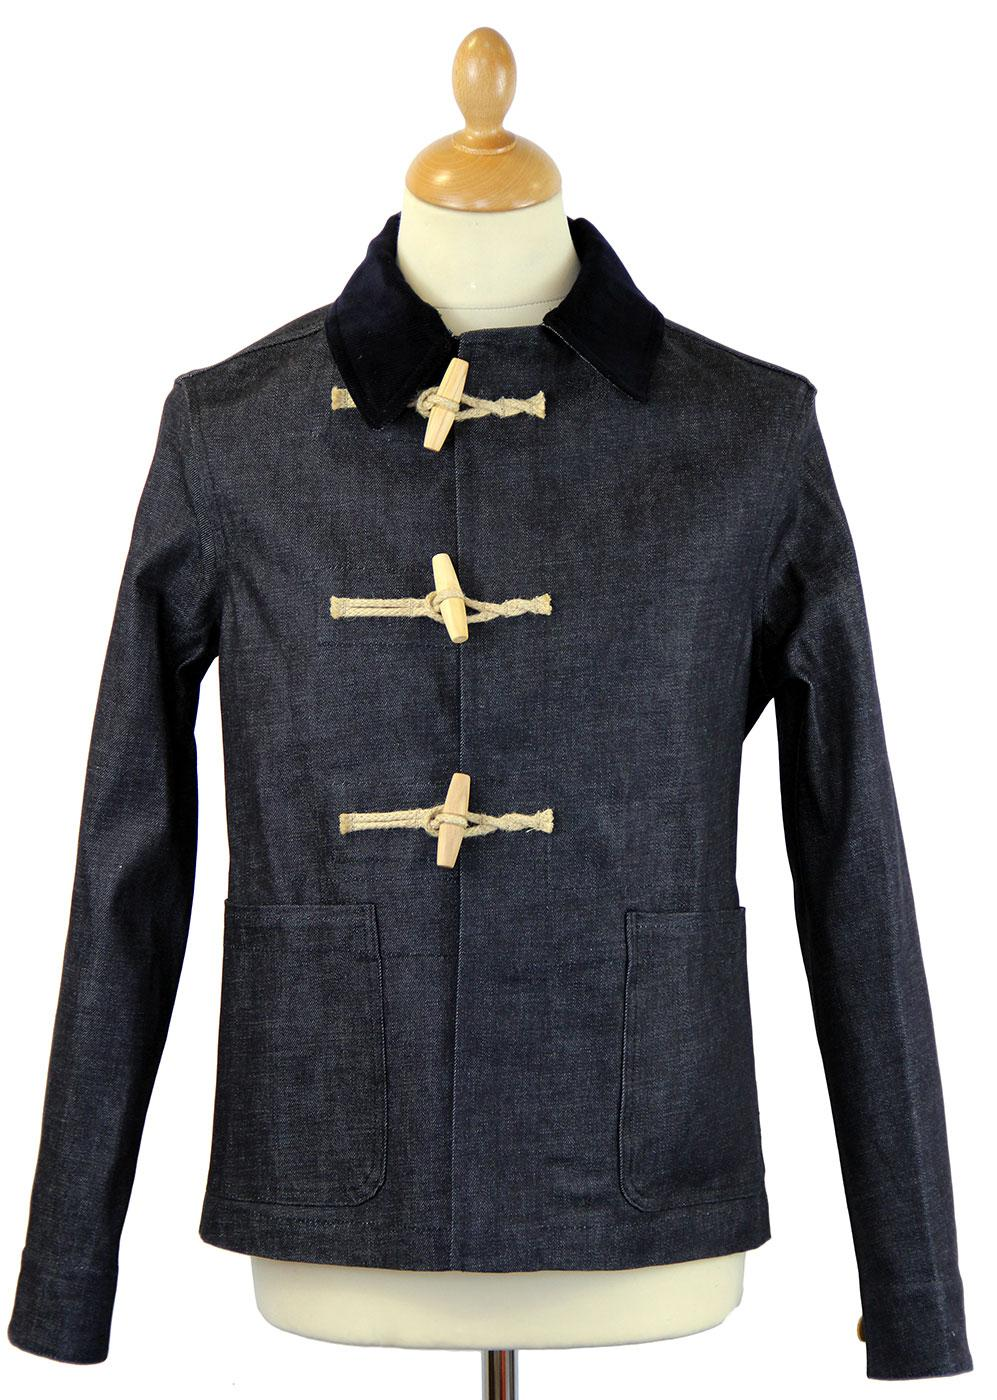 GLOVERALL 3531 Retro Mod Denim Short Duffle Jacket